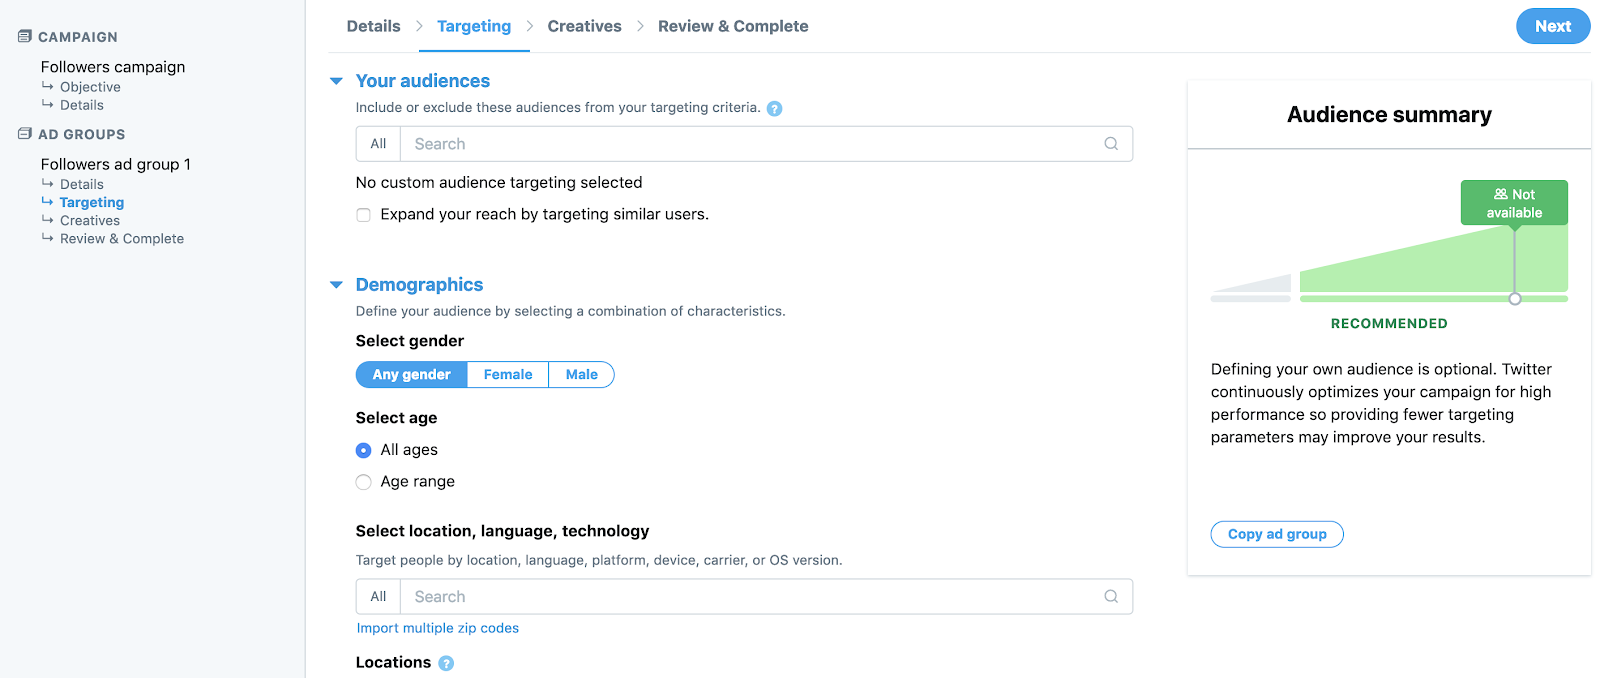 How to Buy High-Quality Twitter Followers Fast [Guide]